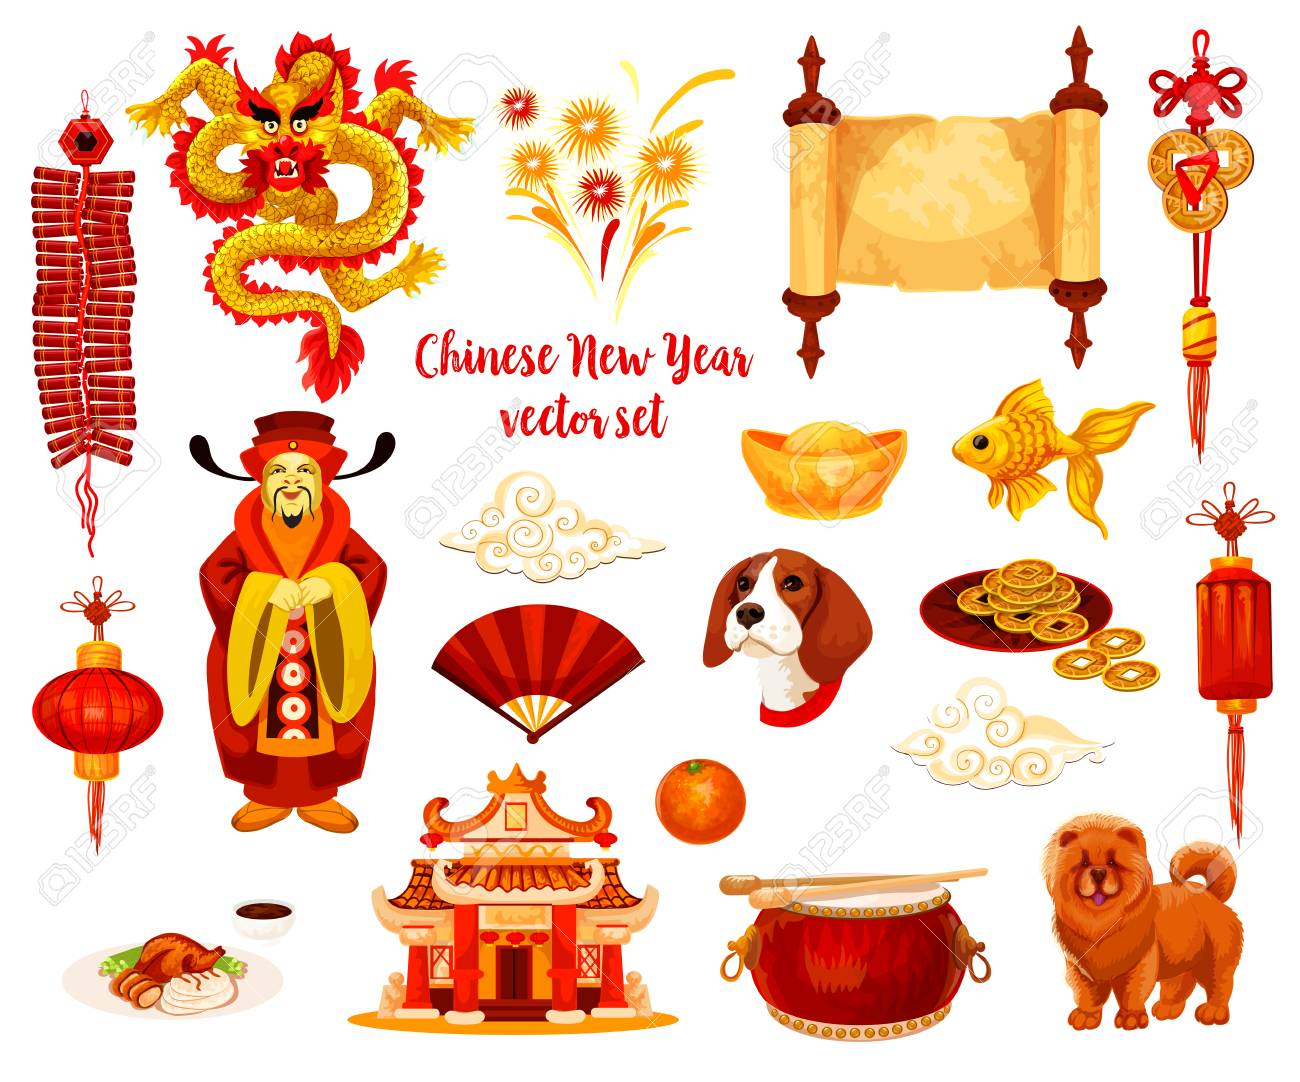 chinese new year symbol set of spring festival celebration royalty free cliparts vectors and stock illustration image 91793413 chinese new year symbol set of spring festival celebration